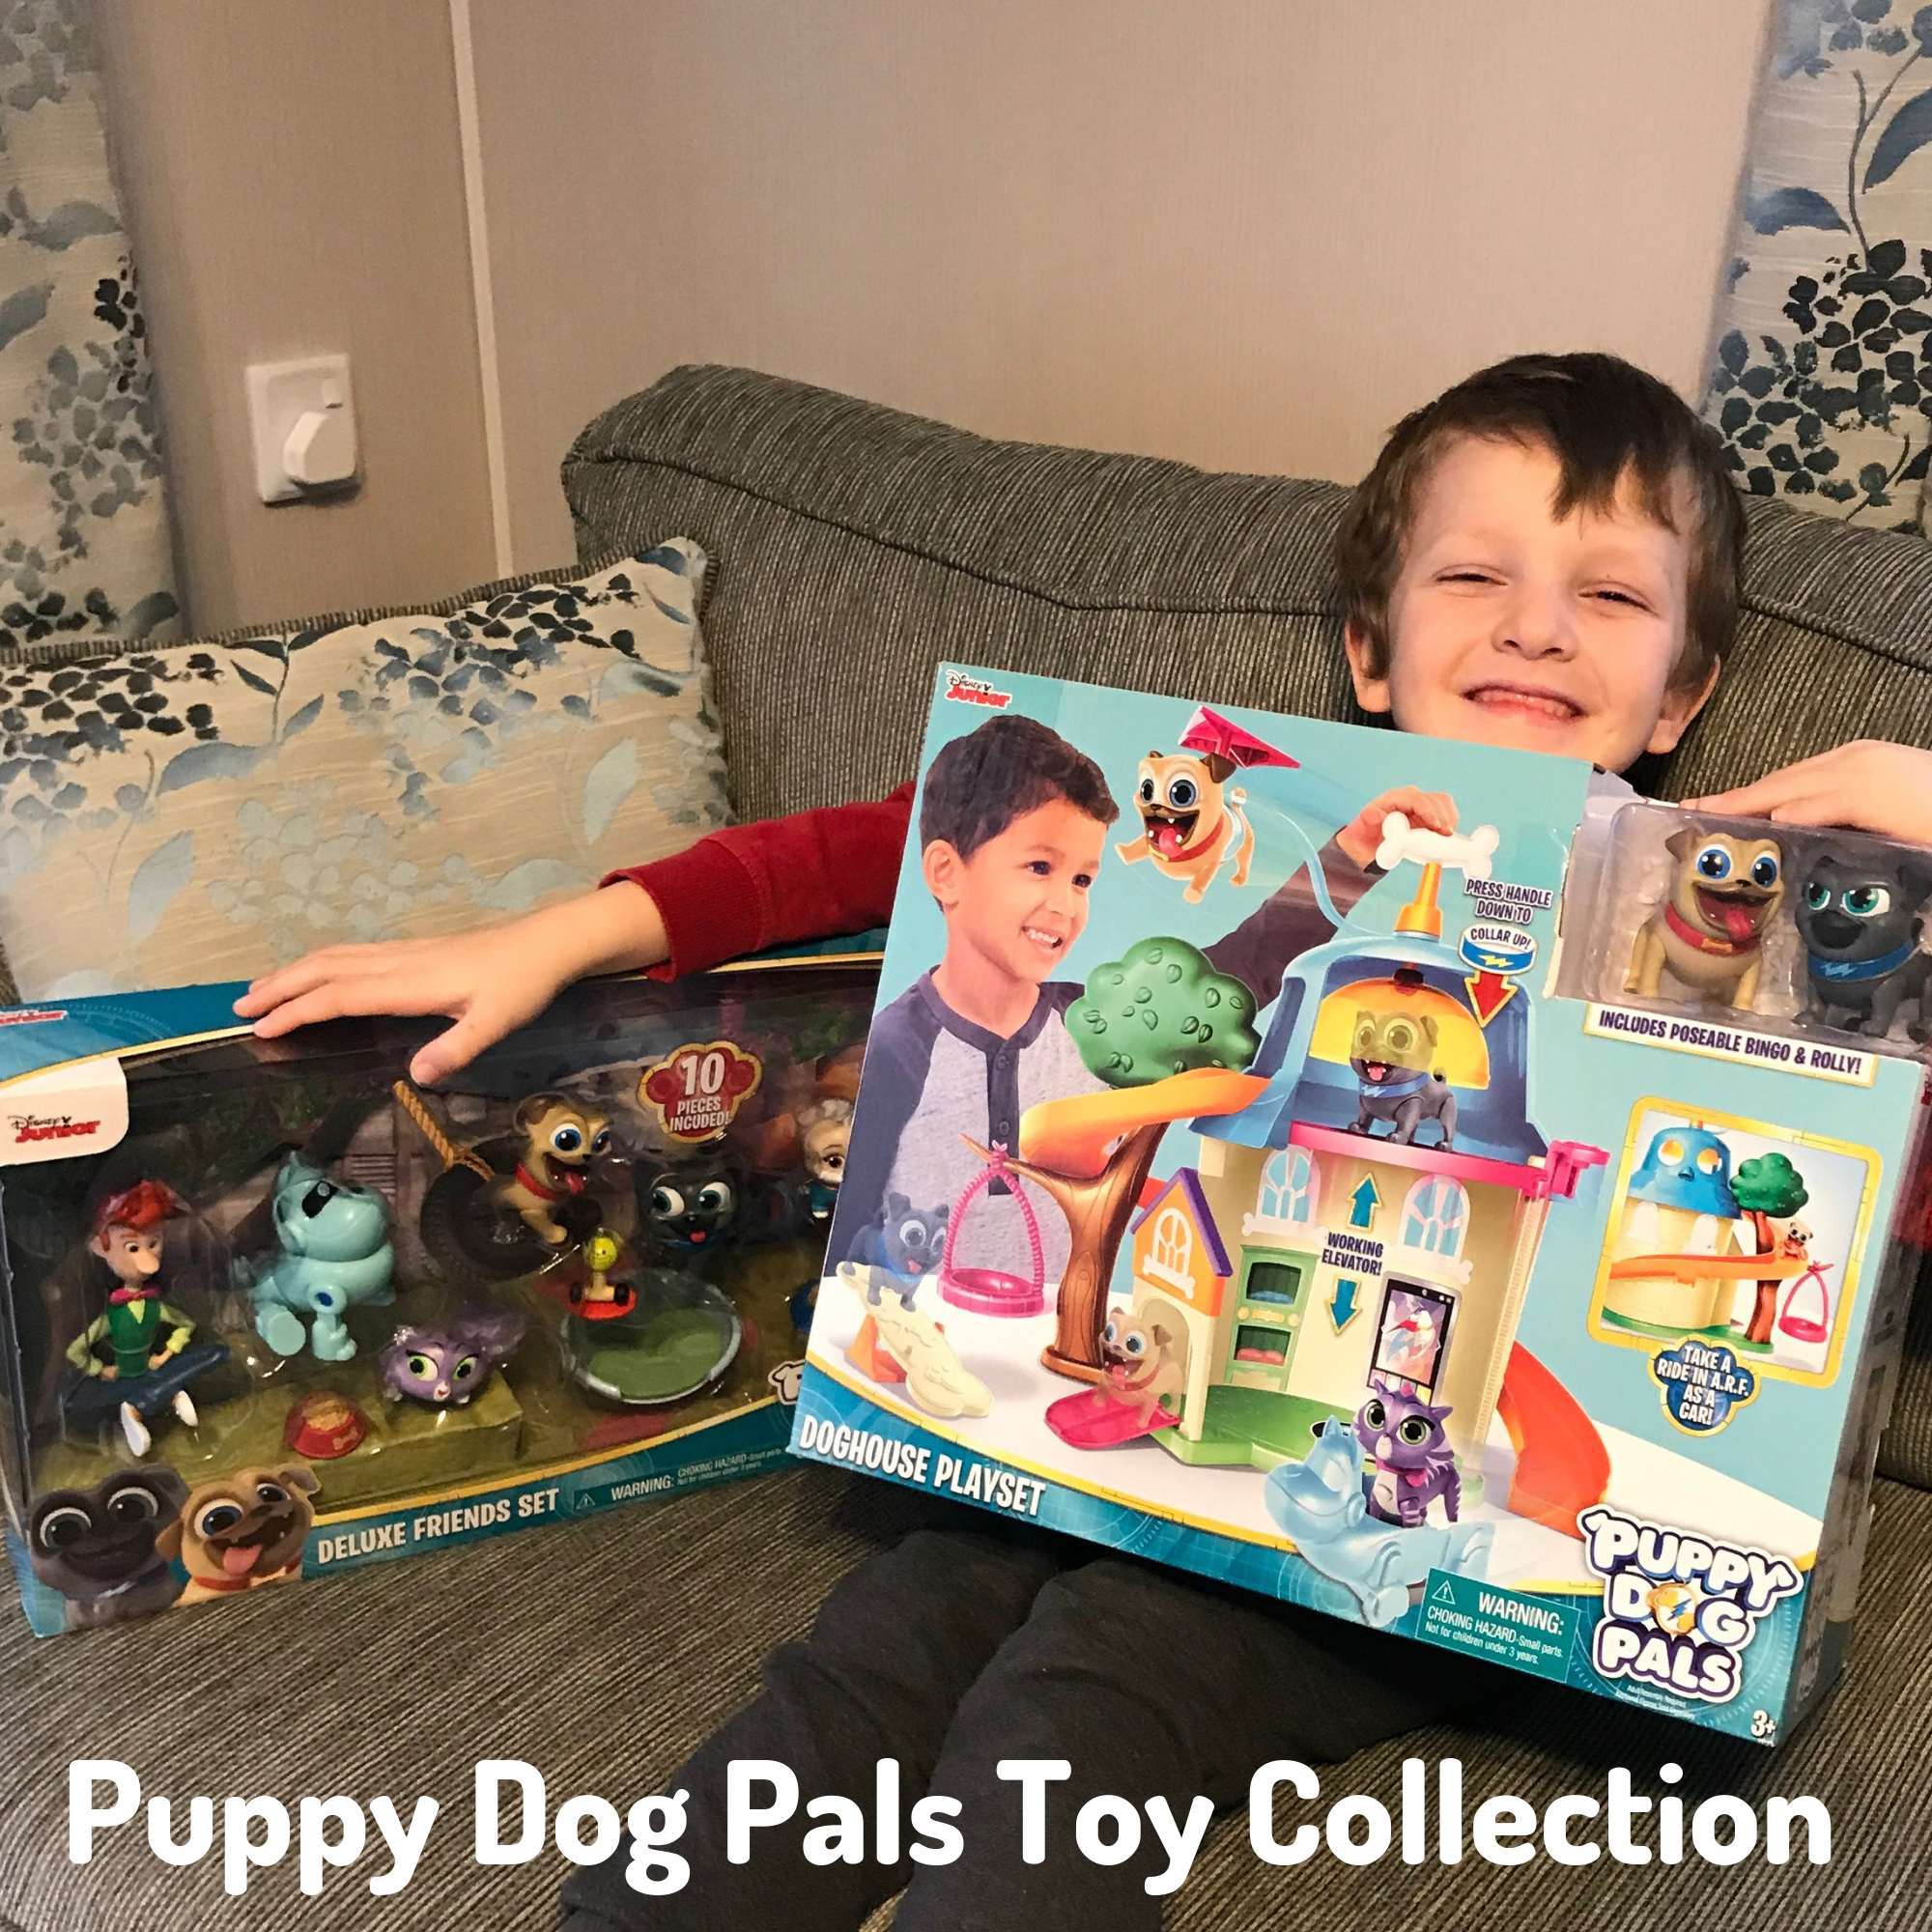 Puppy Dog Pals Toy Collection